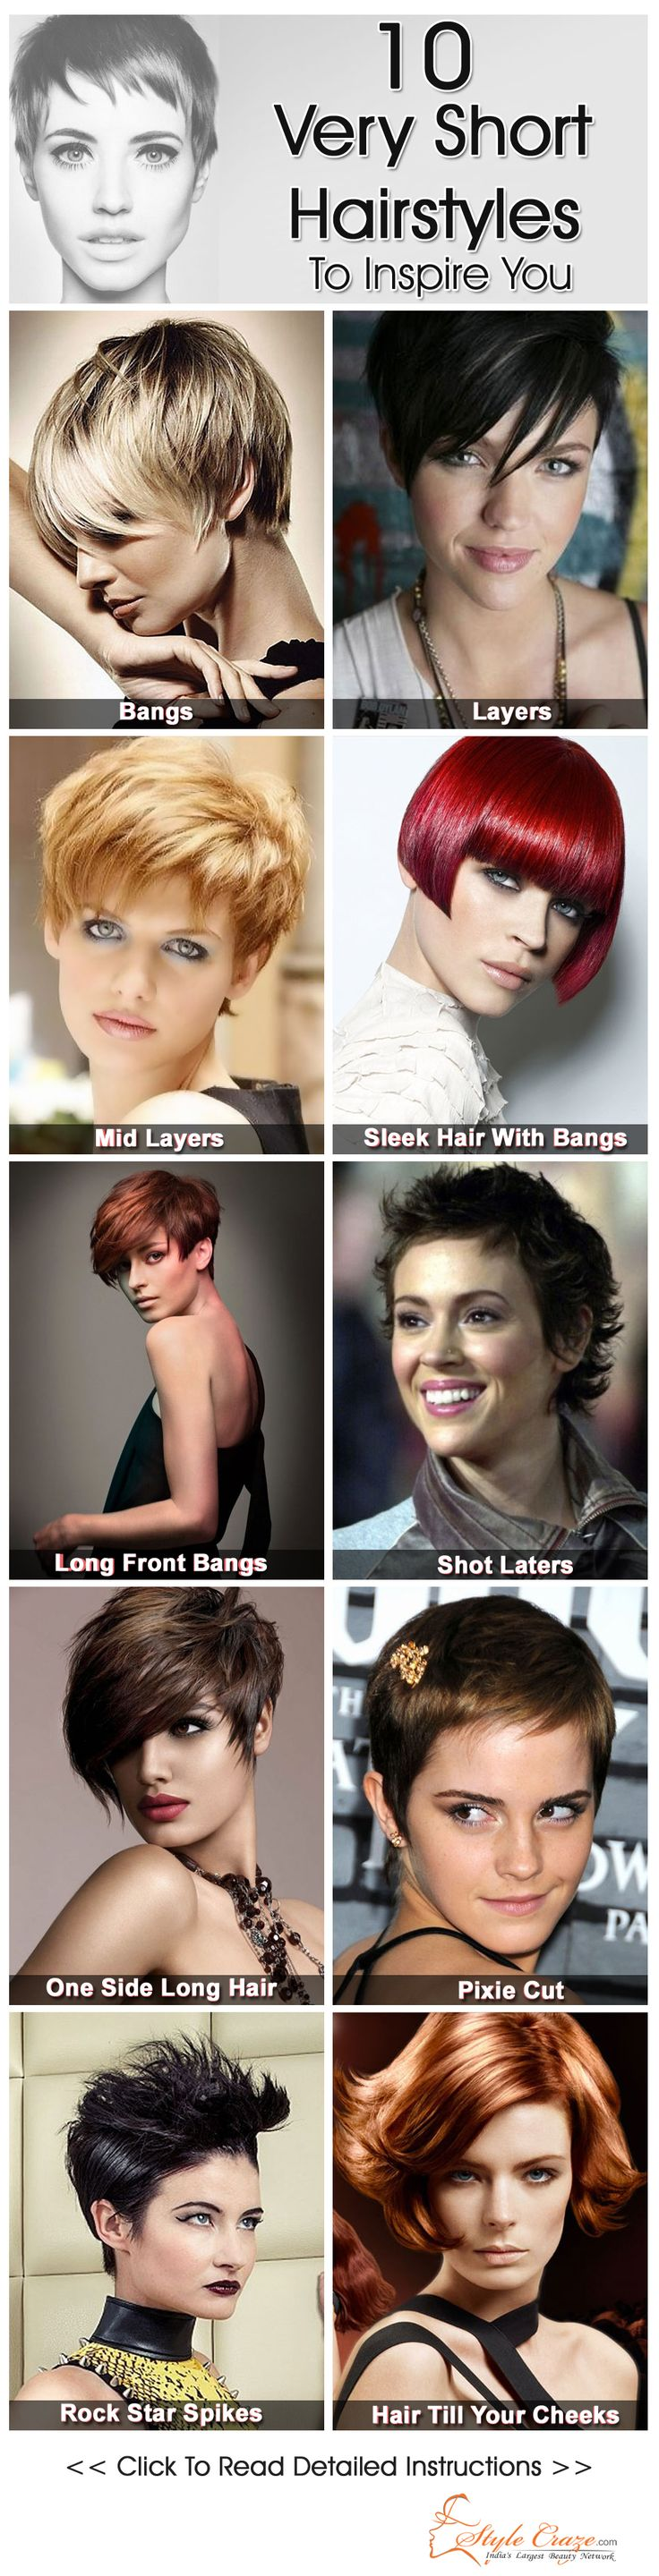 Very Short Hairstyles To Inspire You